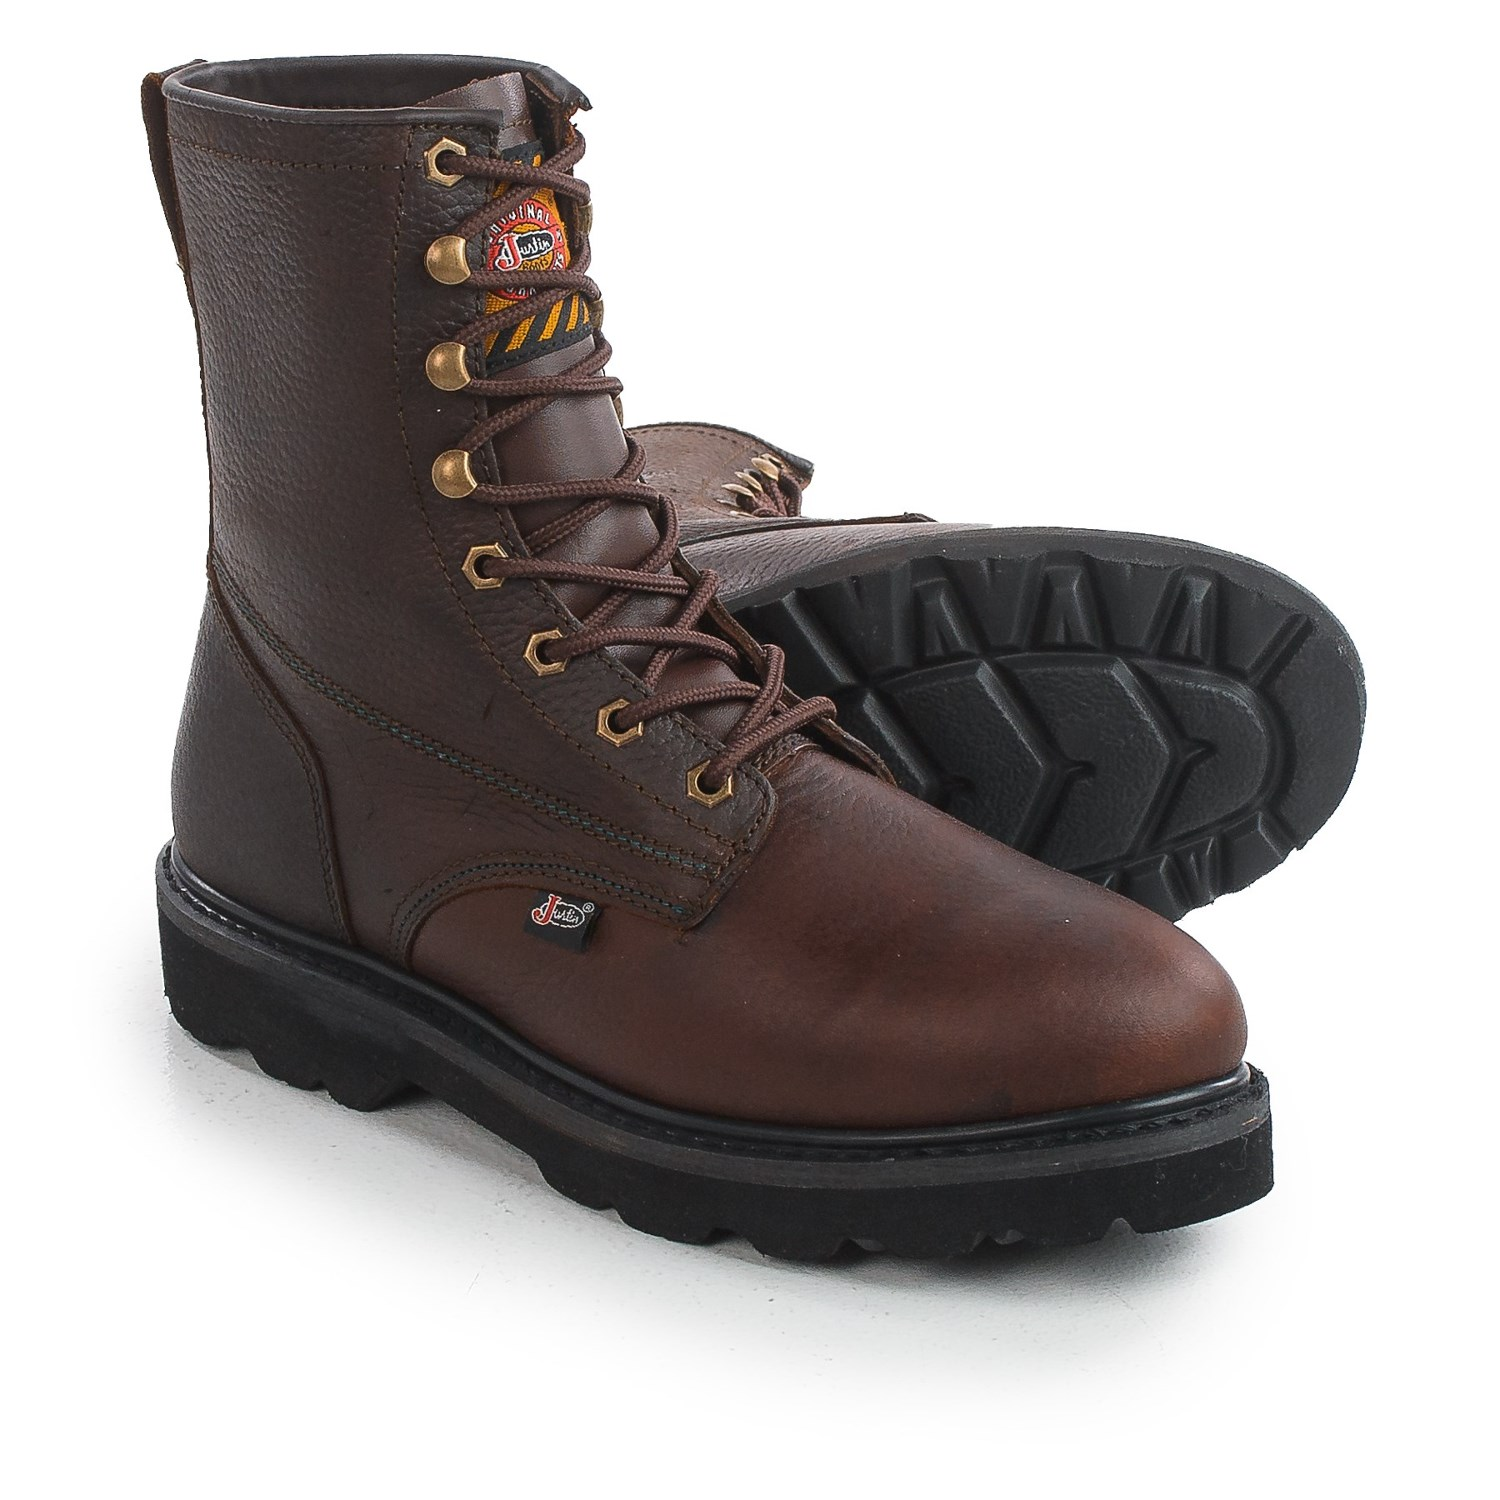 "Justin Boots Original 6"" Work Boots (For Men) - Save 50%"